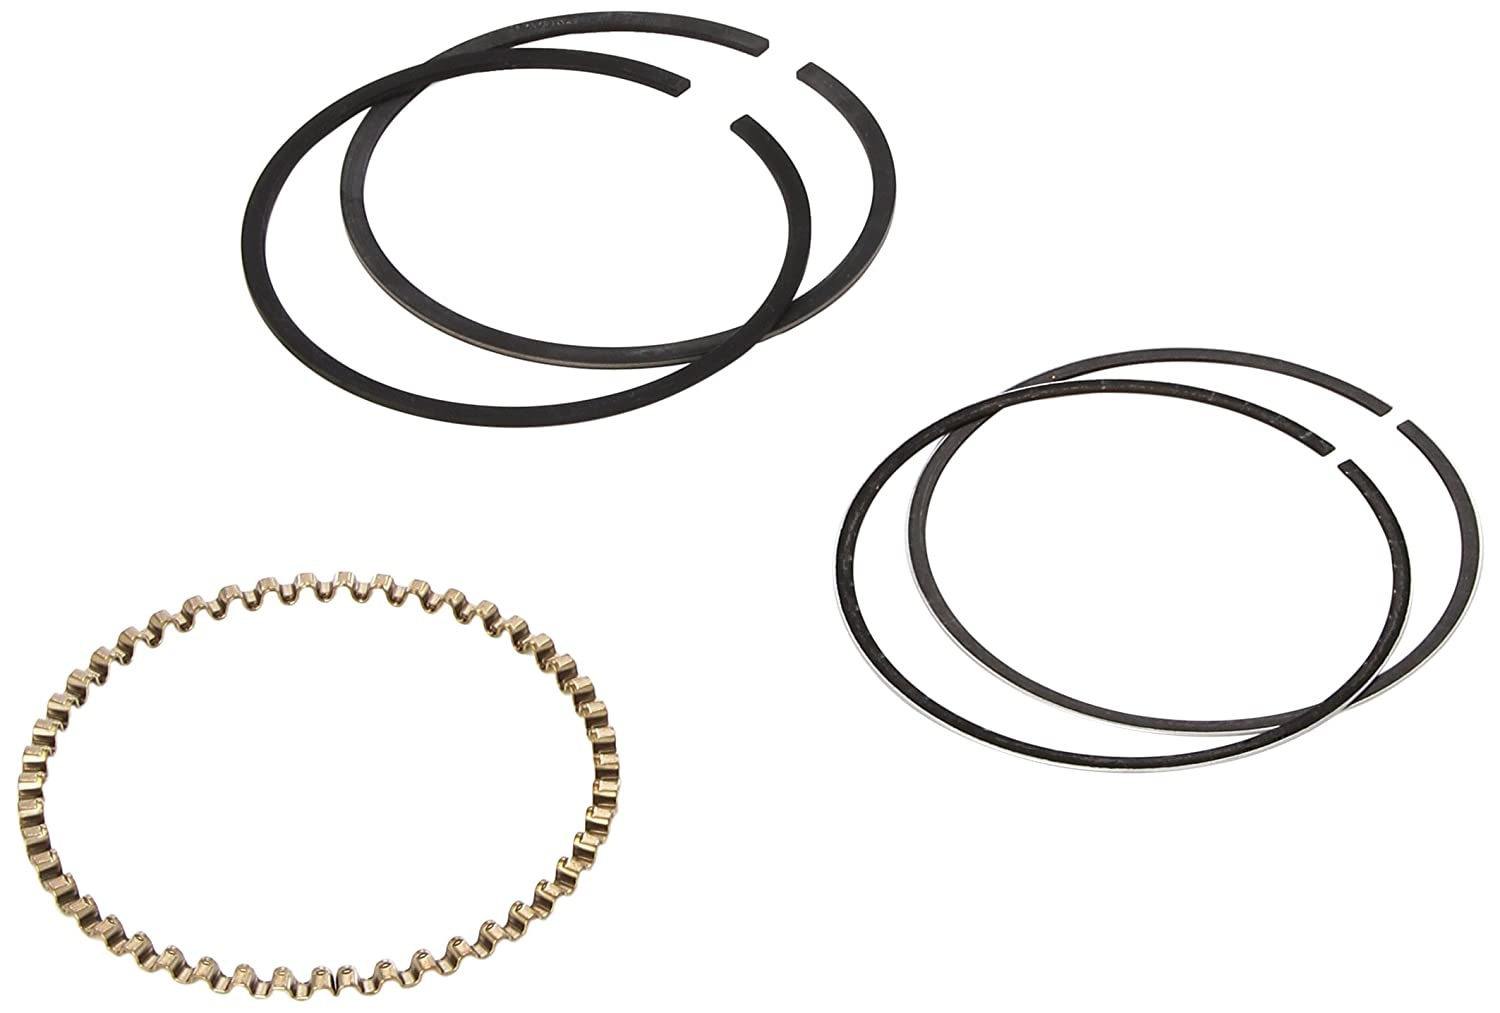 Wiseco 3497X Ring Set for 88.82mm Cylinder Bore